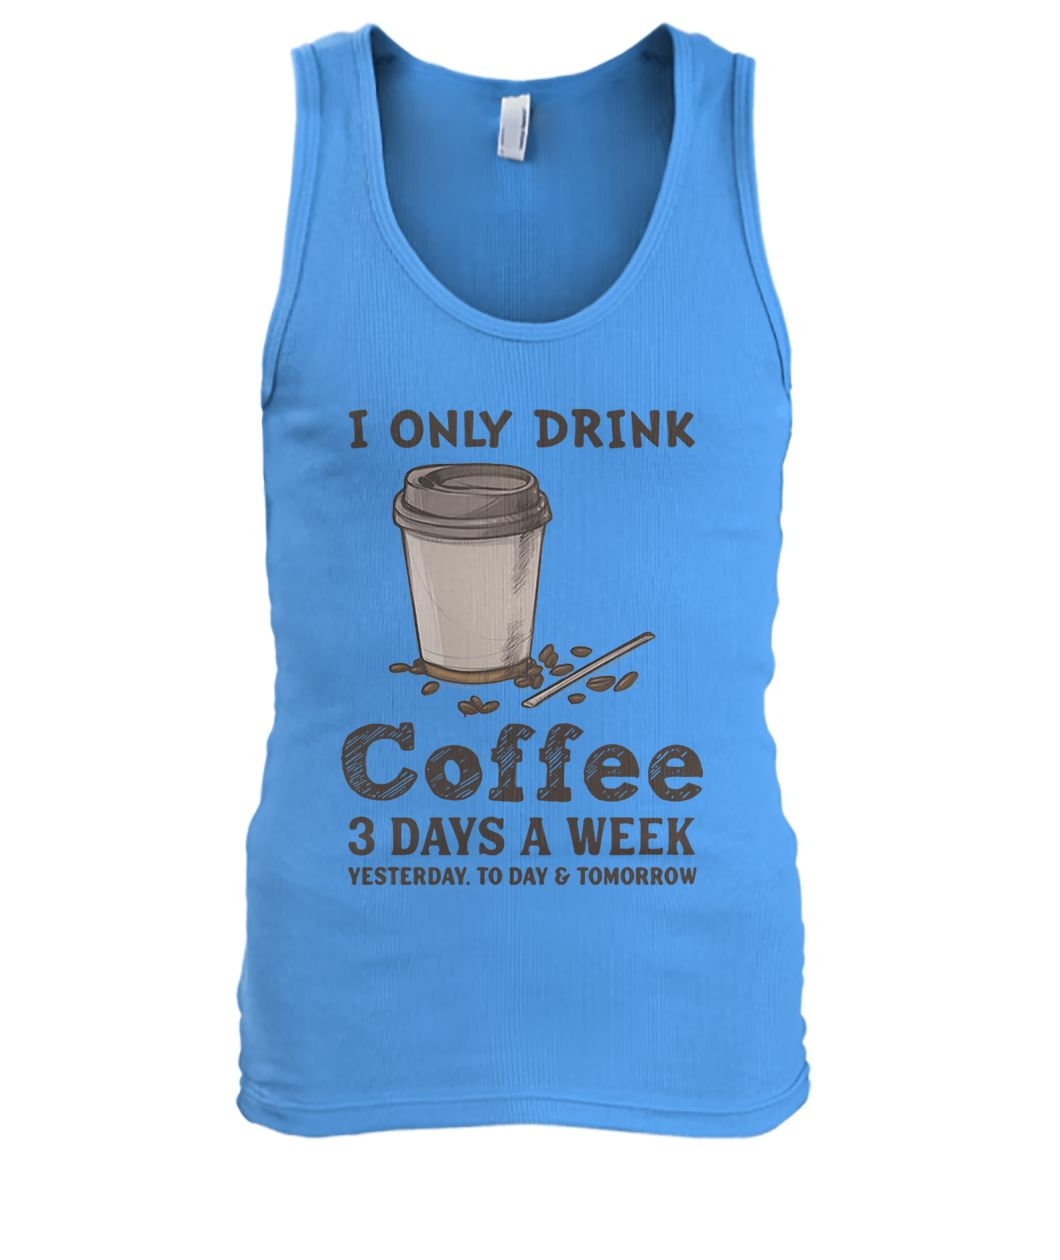 I only drink coffee 3 days a week yesterday today and tomorrow men's tank top